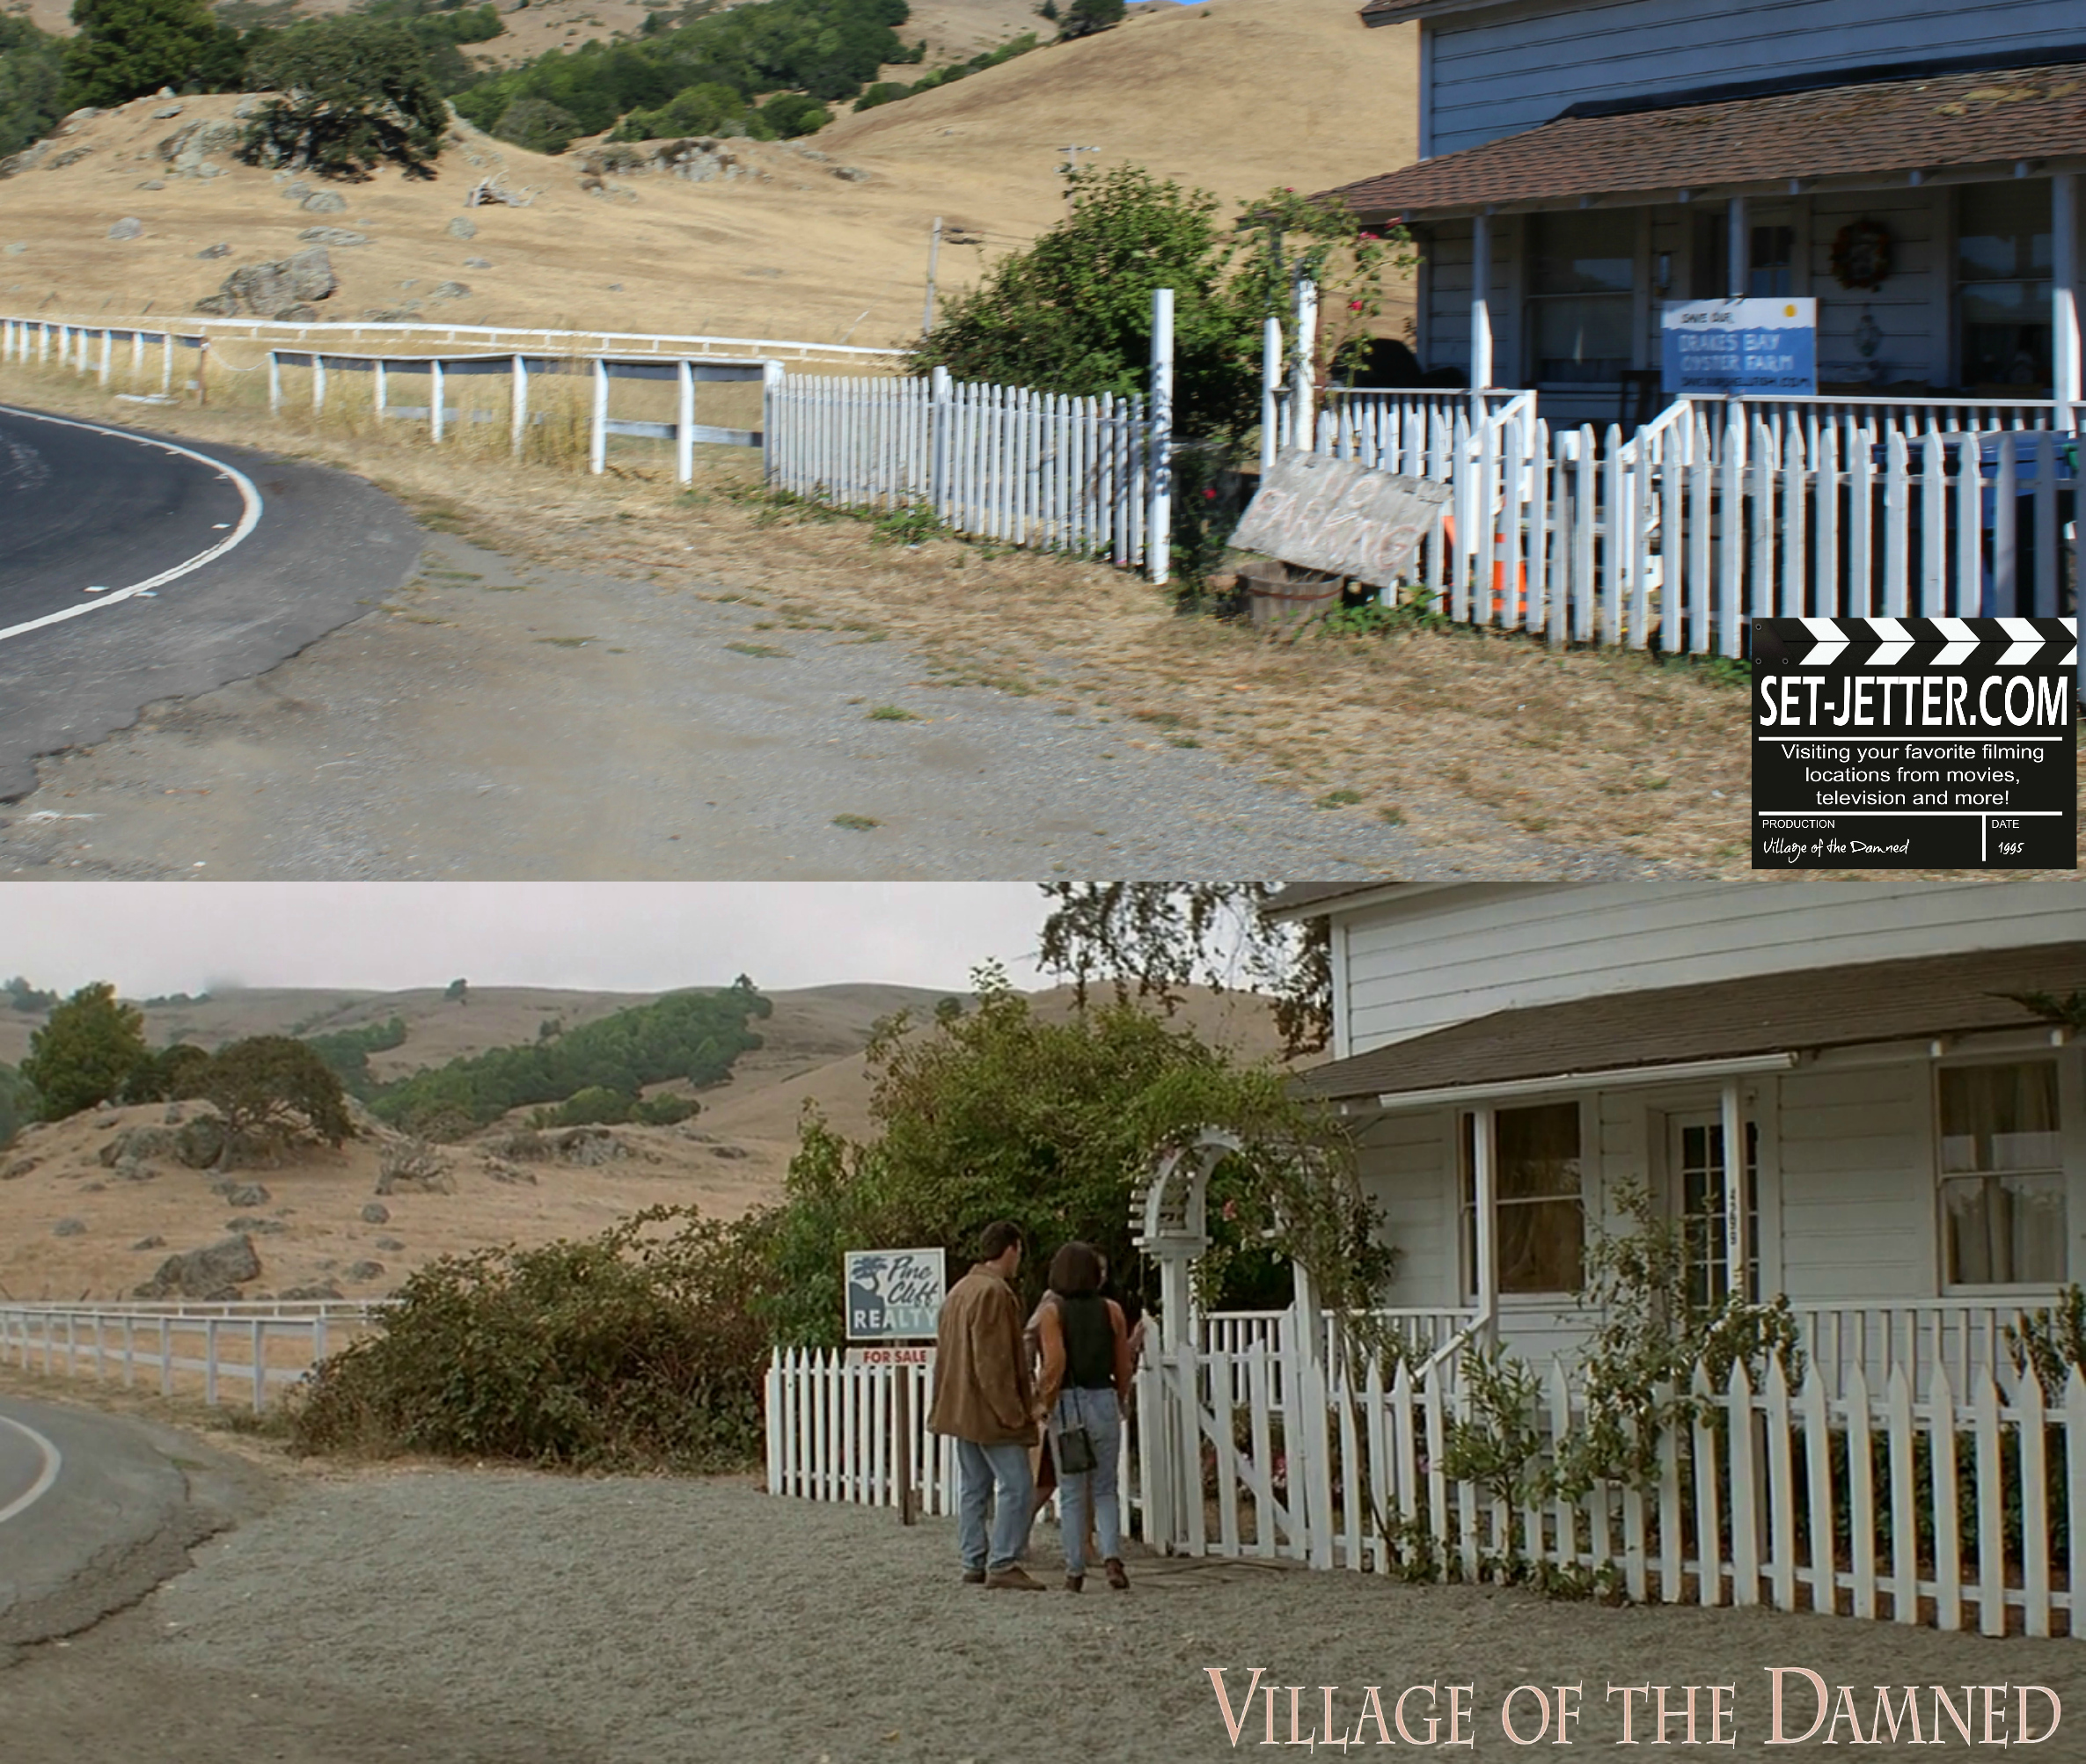 Village of the Damned comparison 45.jpg